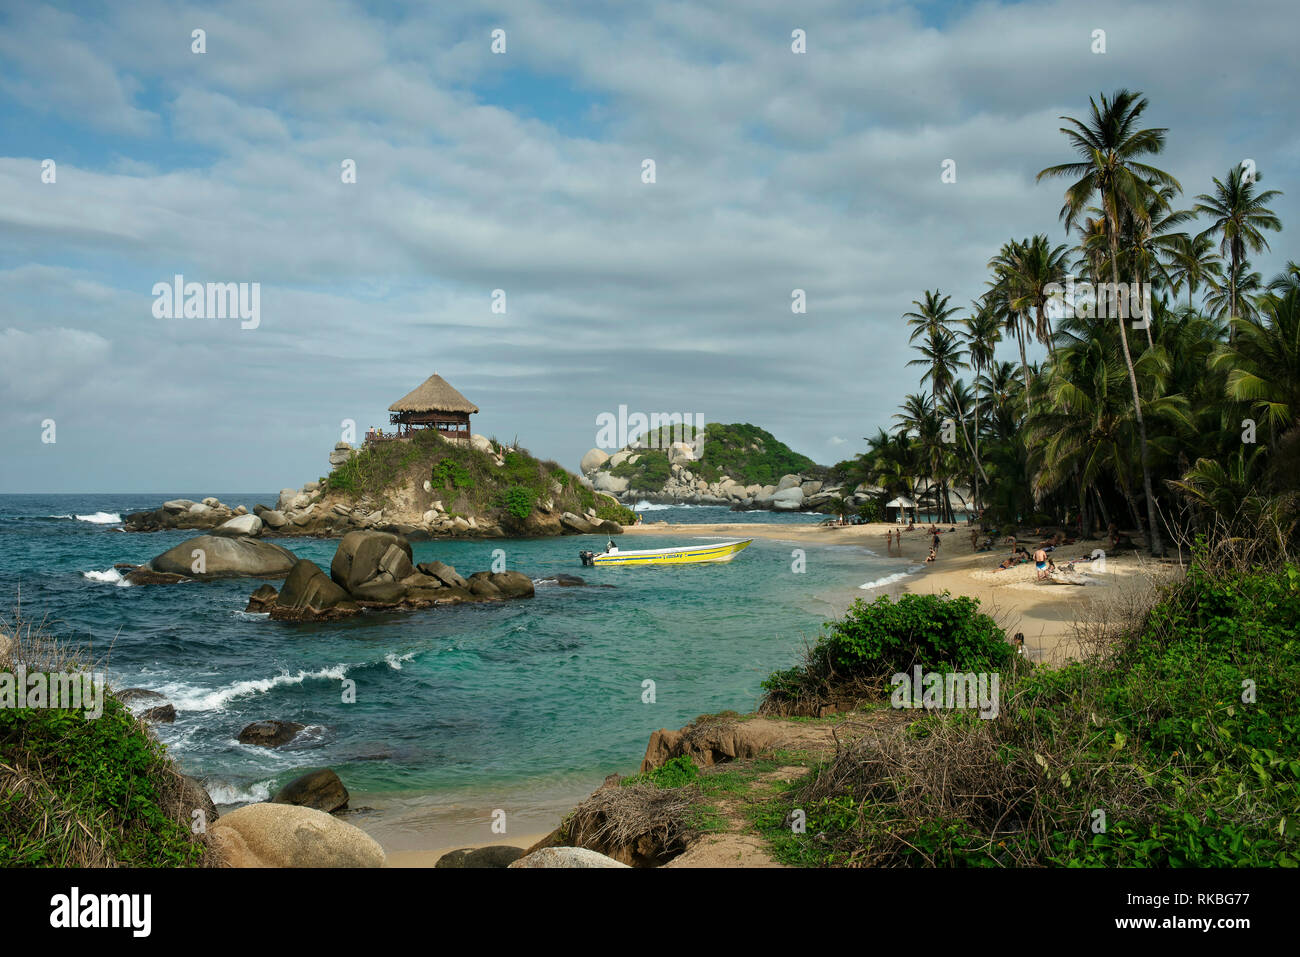 Scenic views of Cabo San Juan beach including tourists. Tayrona National Park, Colombia. Sep 2018 - Stock Image